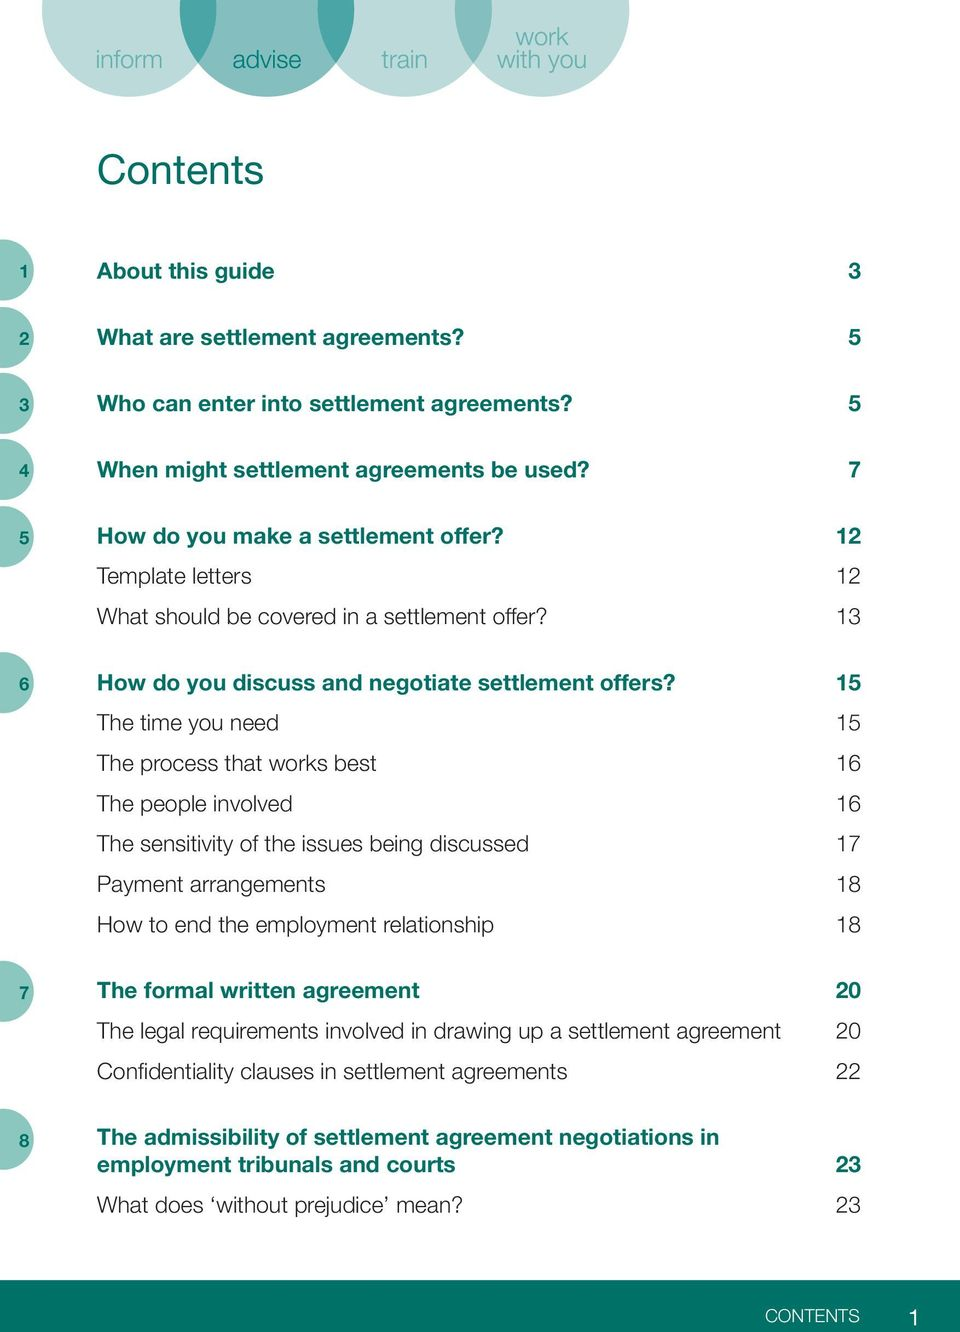 15 The time you need 15 The process that works best 16 The people involved 16 The sensitivity of the issues being discussed 17 Payment arrangements 18 How to end the employment relationship 18 7 The